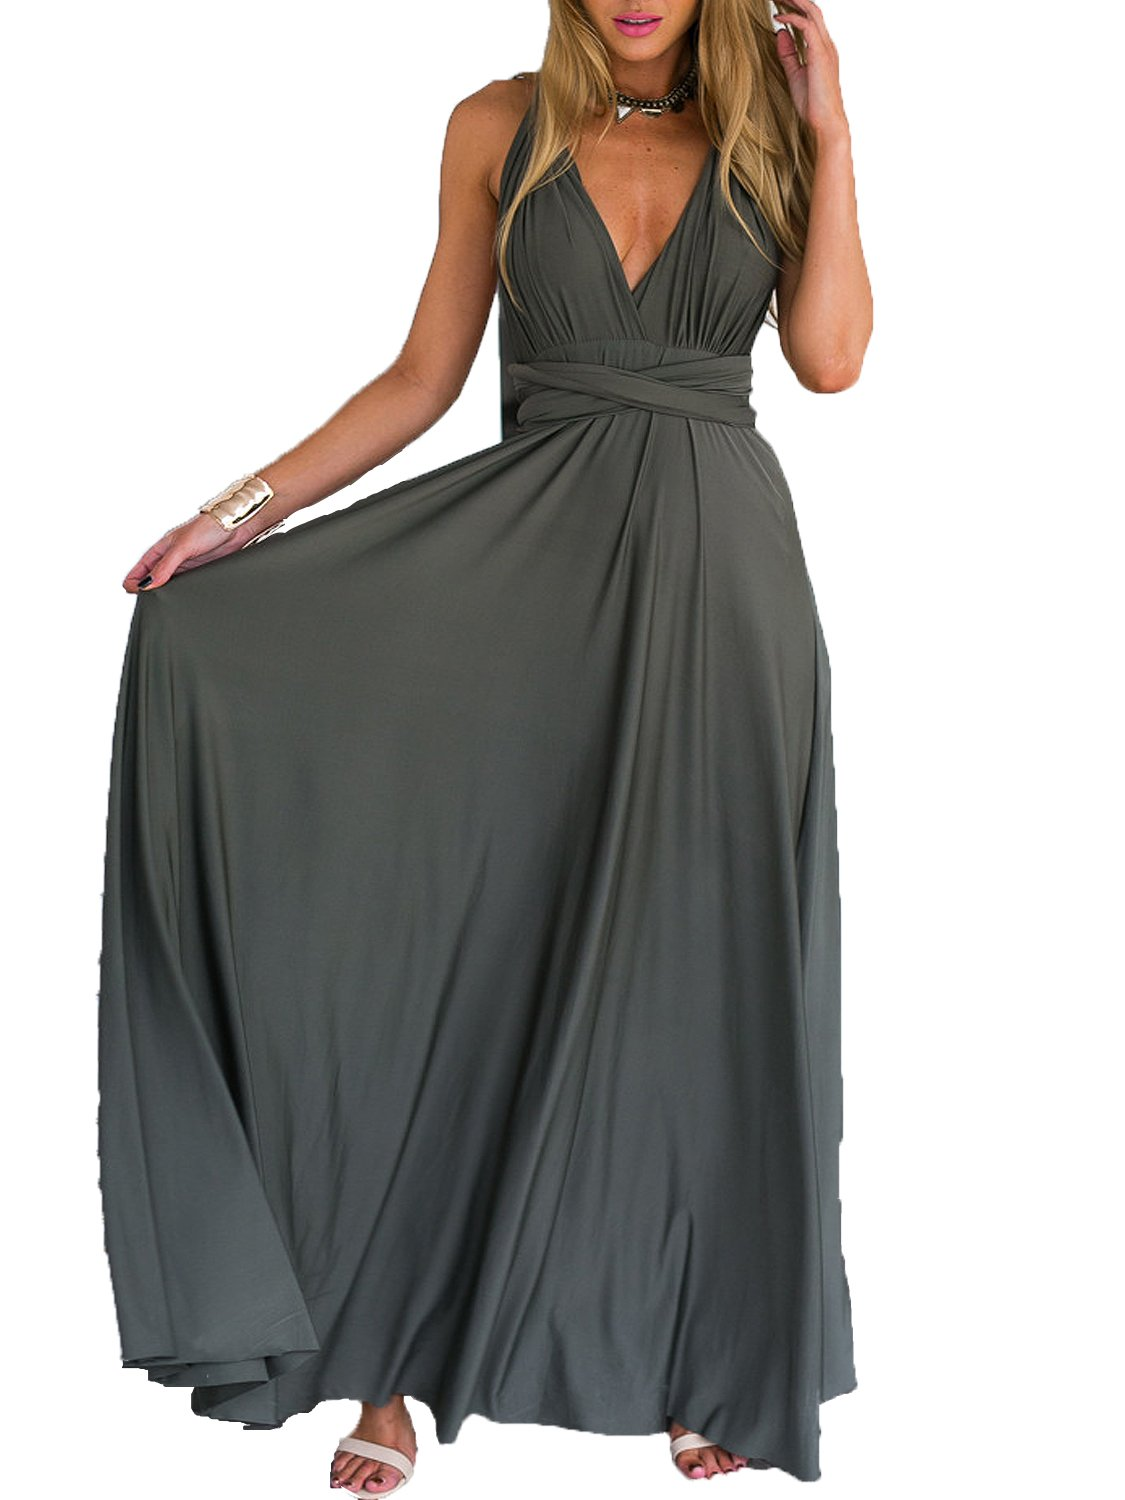 Clothink Women Gray Summer Deep V Neck Prom Dress M